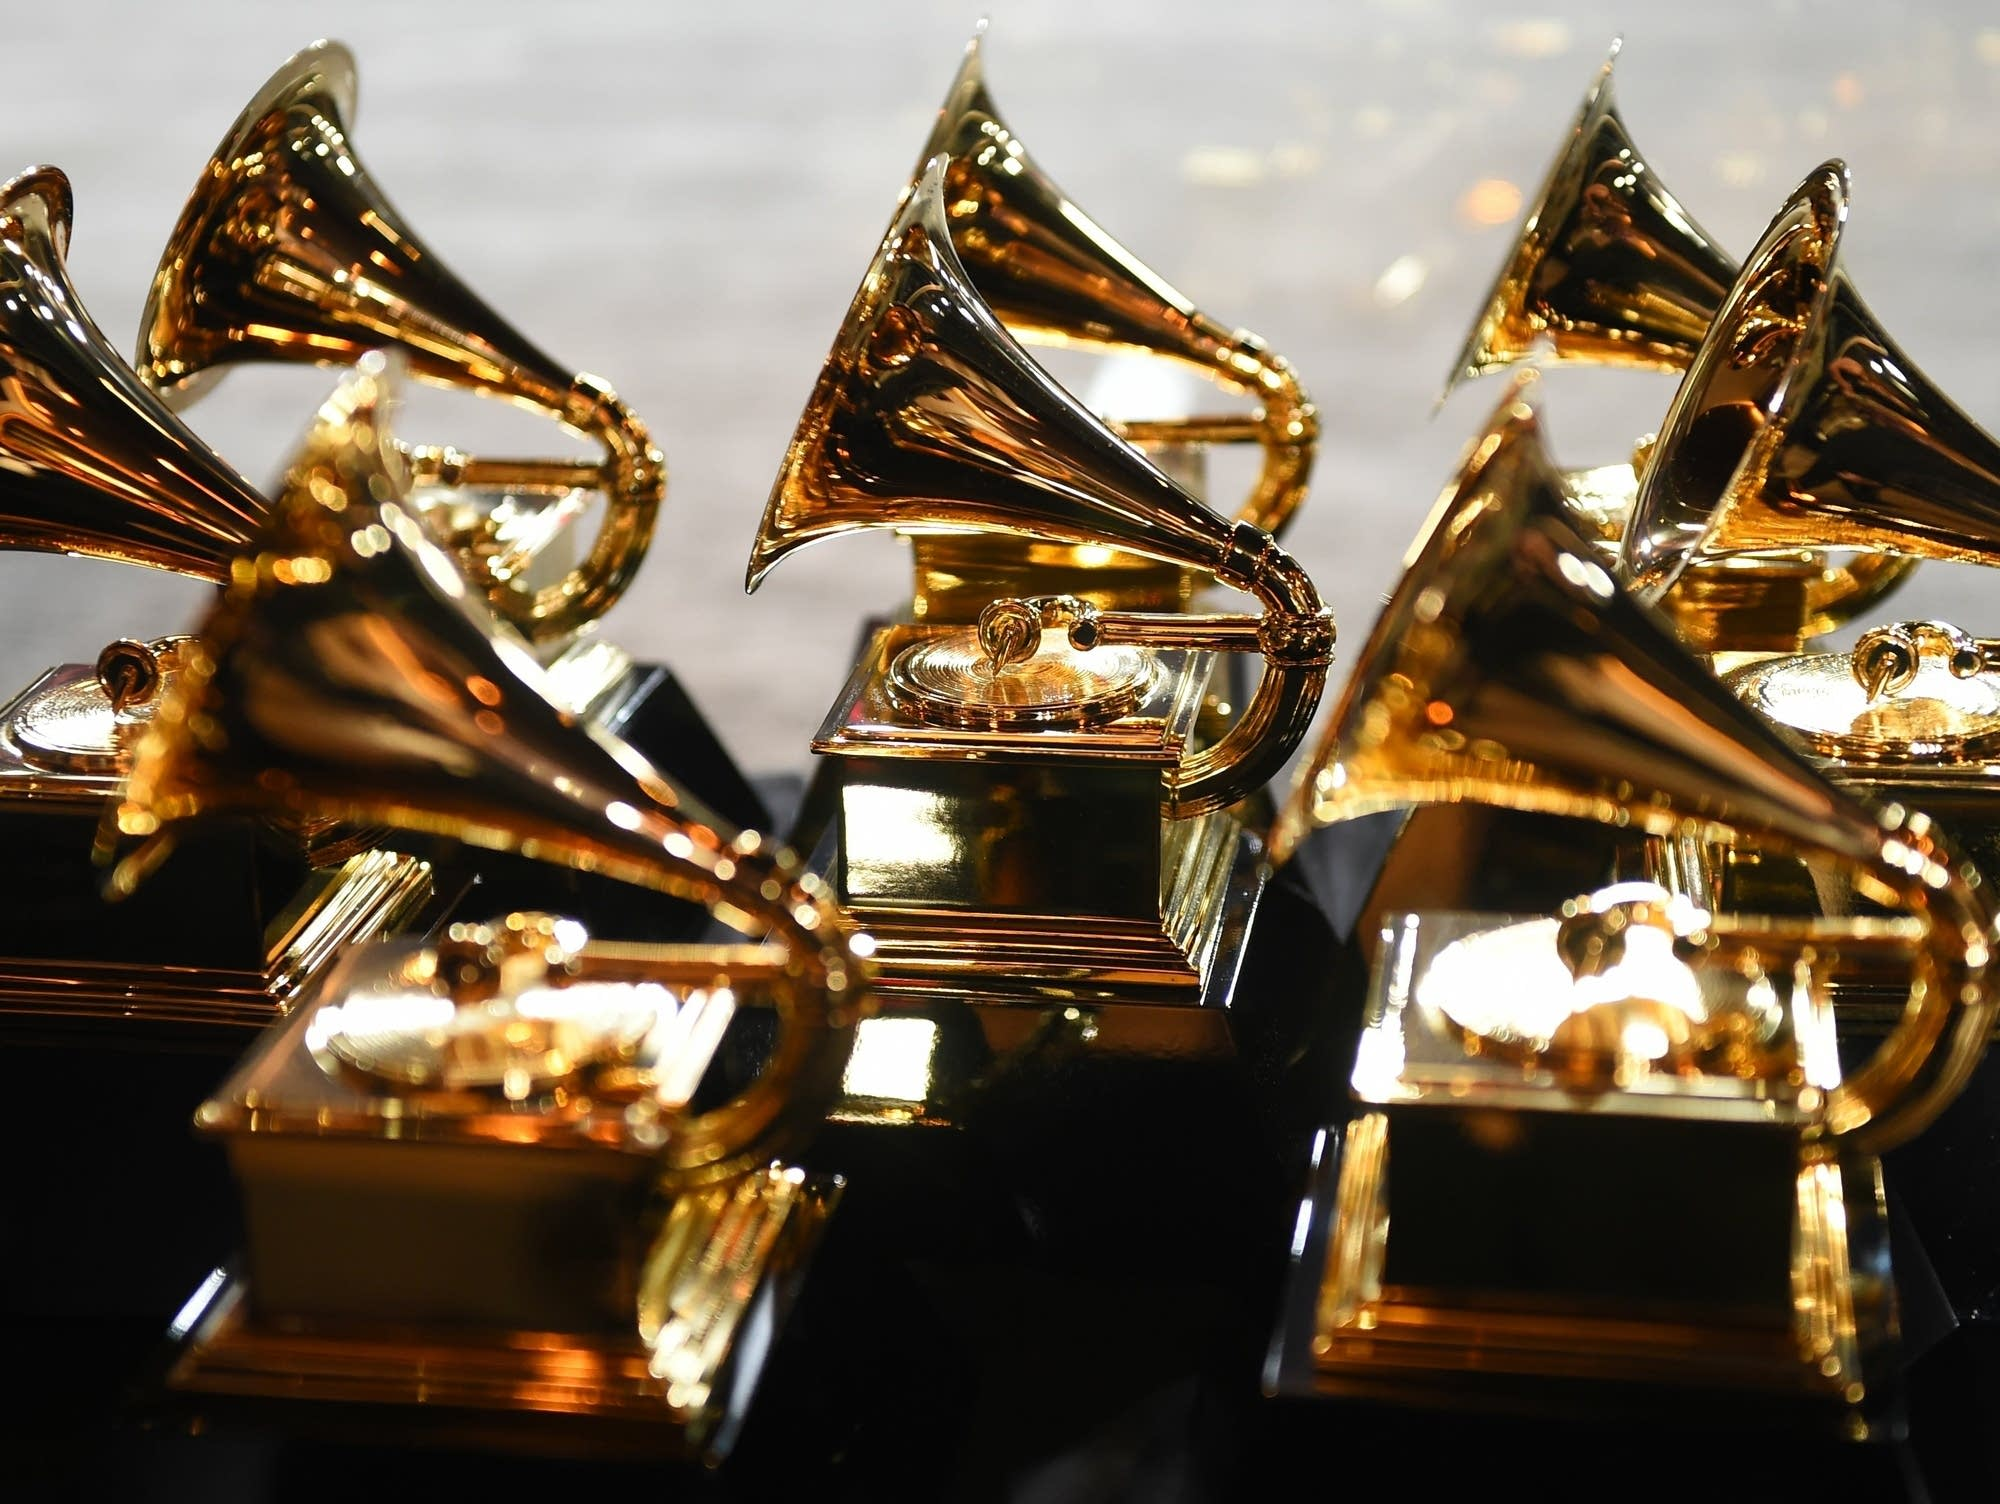 Trophies on display at the Grammy Awards, 2018.